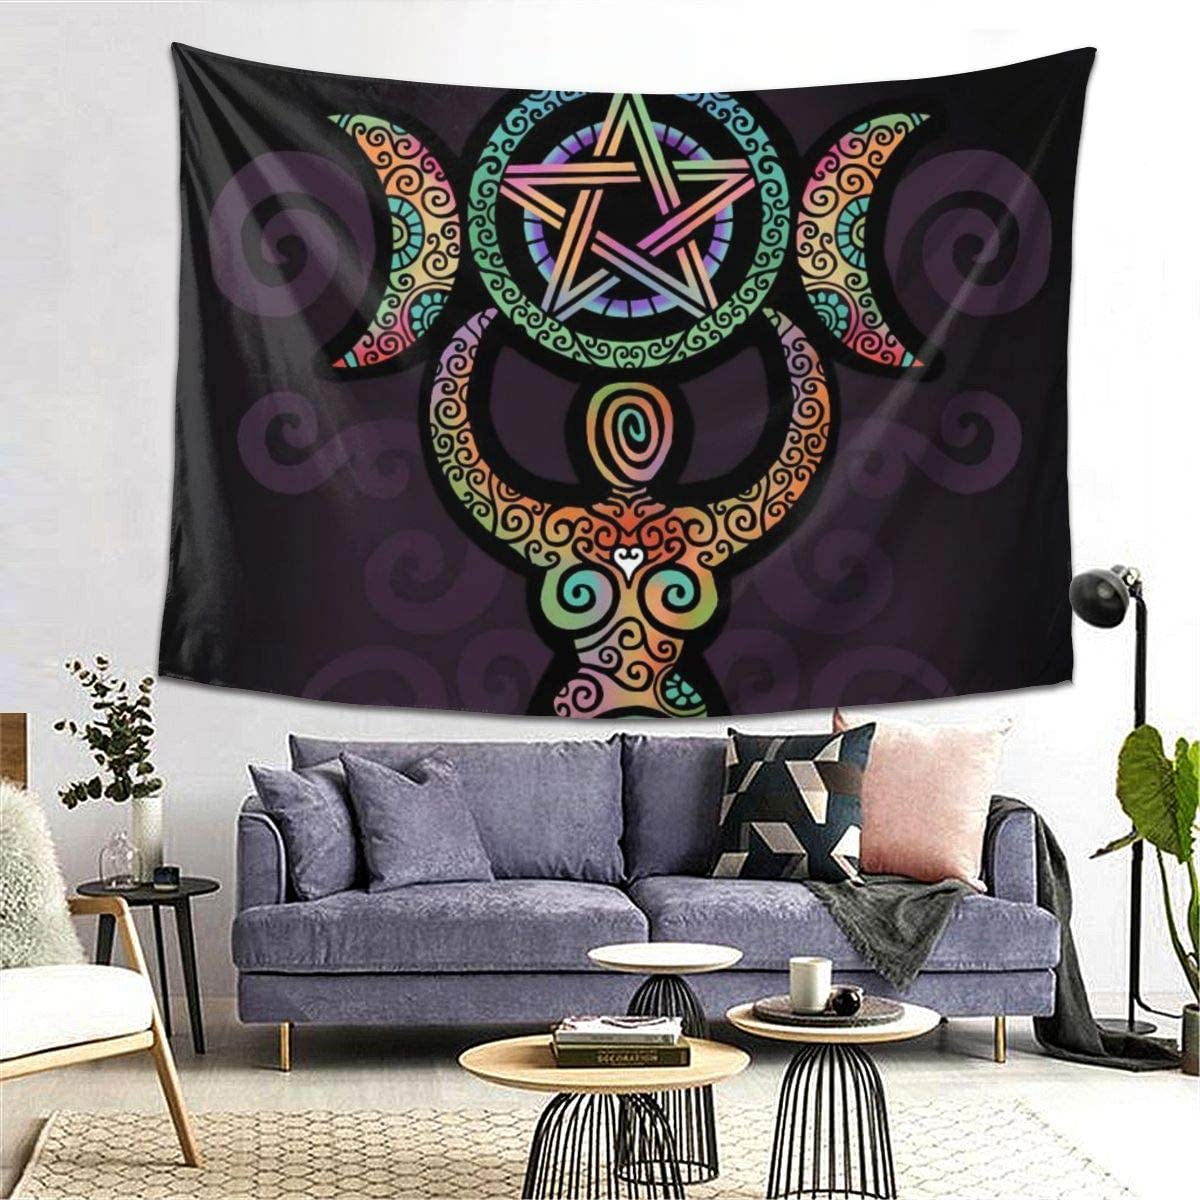 Idealism Wicca Wiccan Triple Moon Gaia Goddess Tapestry Wall Decor Hanging for Dorm Party Bedroom//Living Room Home Decorations Polyester 80W X 60L Inches